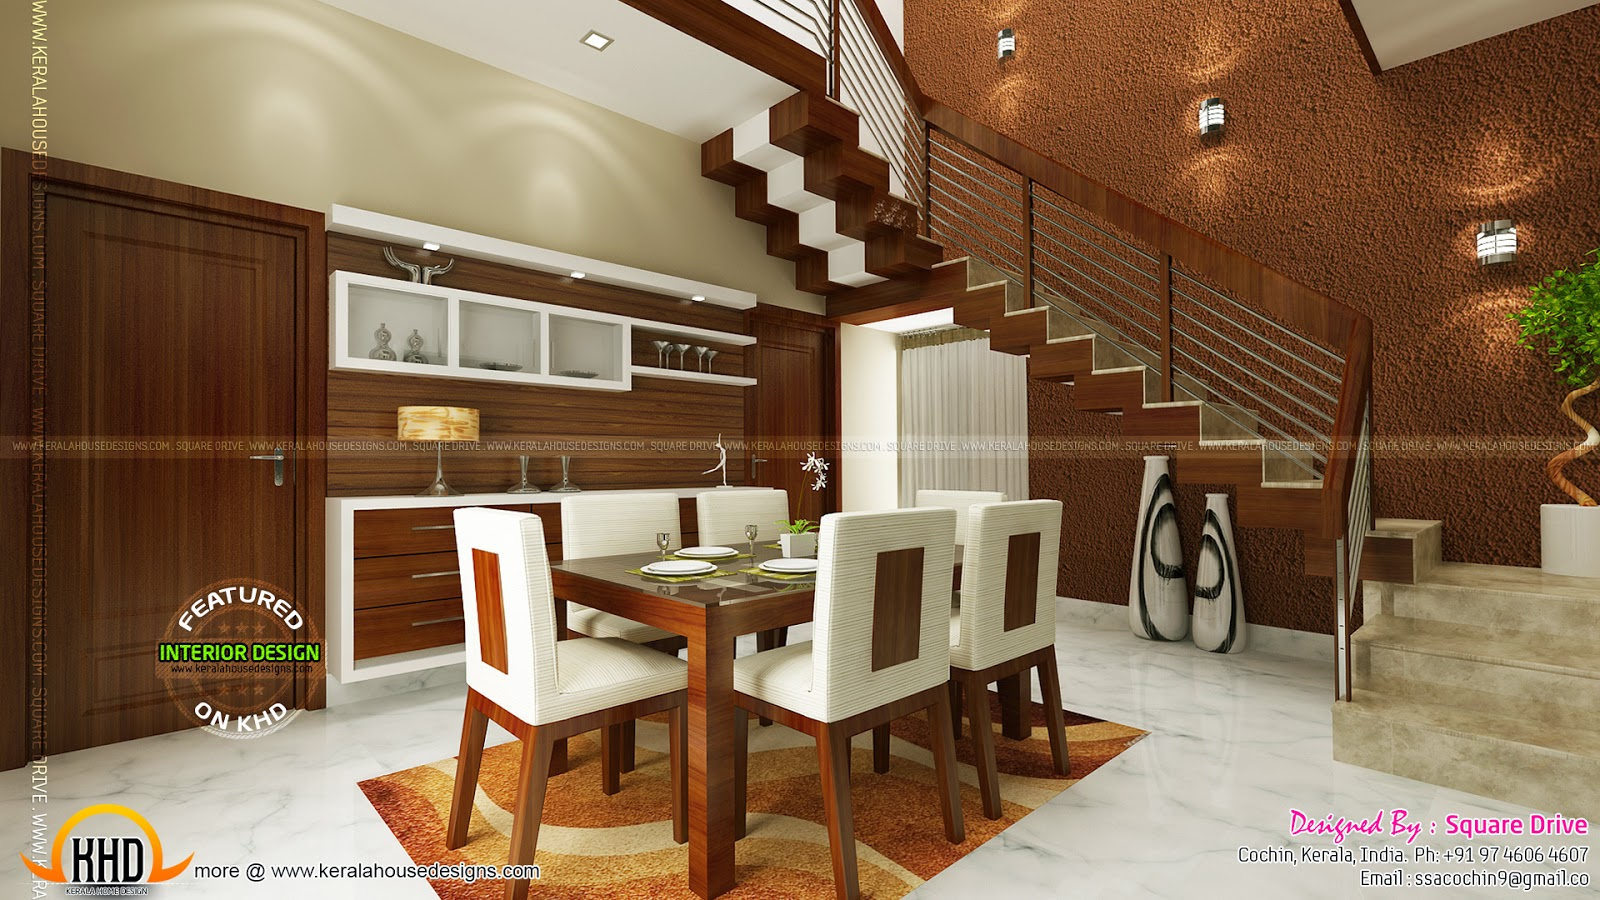 Cochin interior design kerala home design and floor plans for Dining room interior images